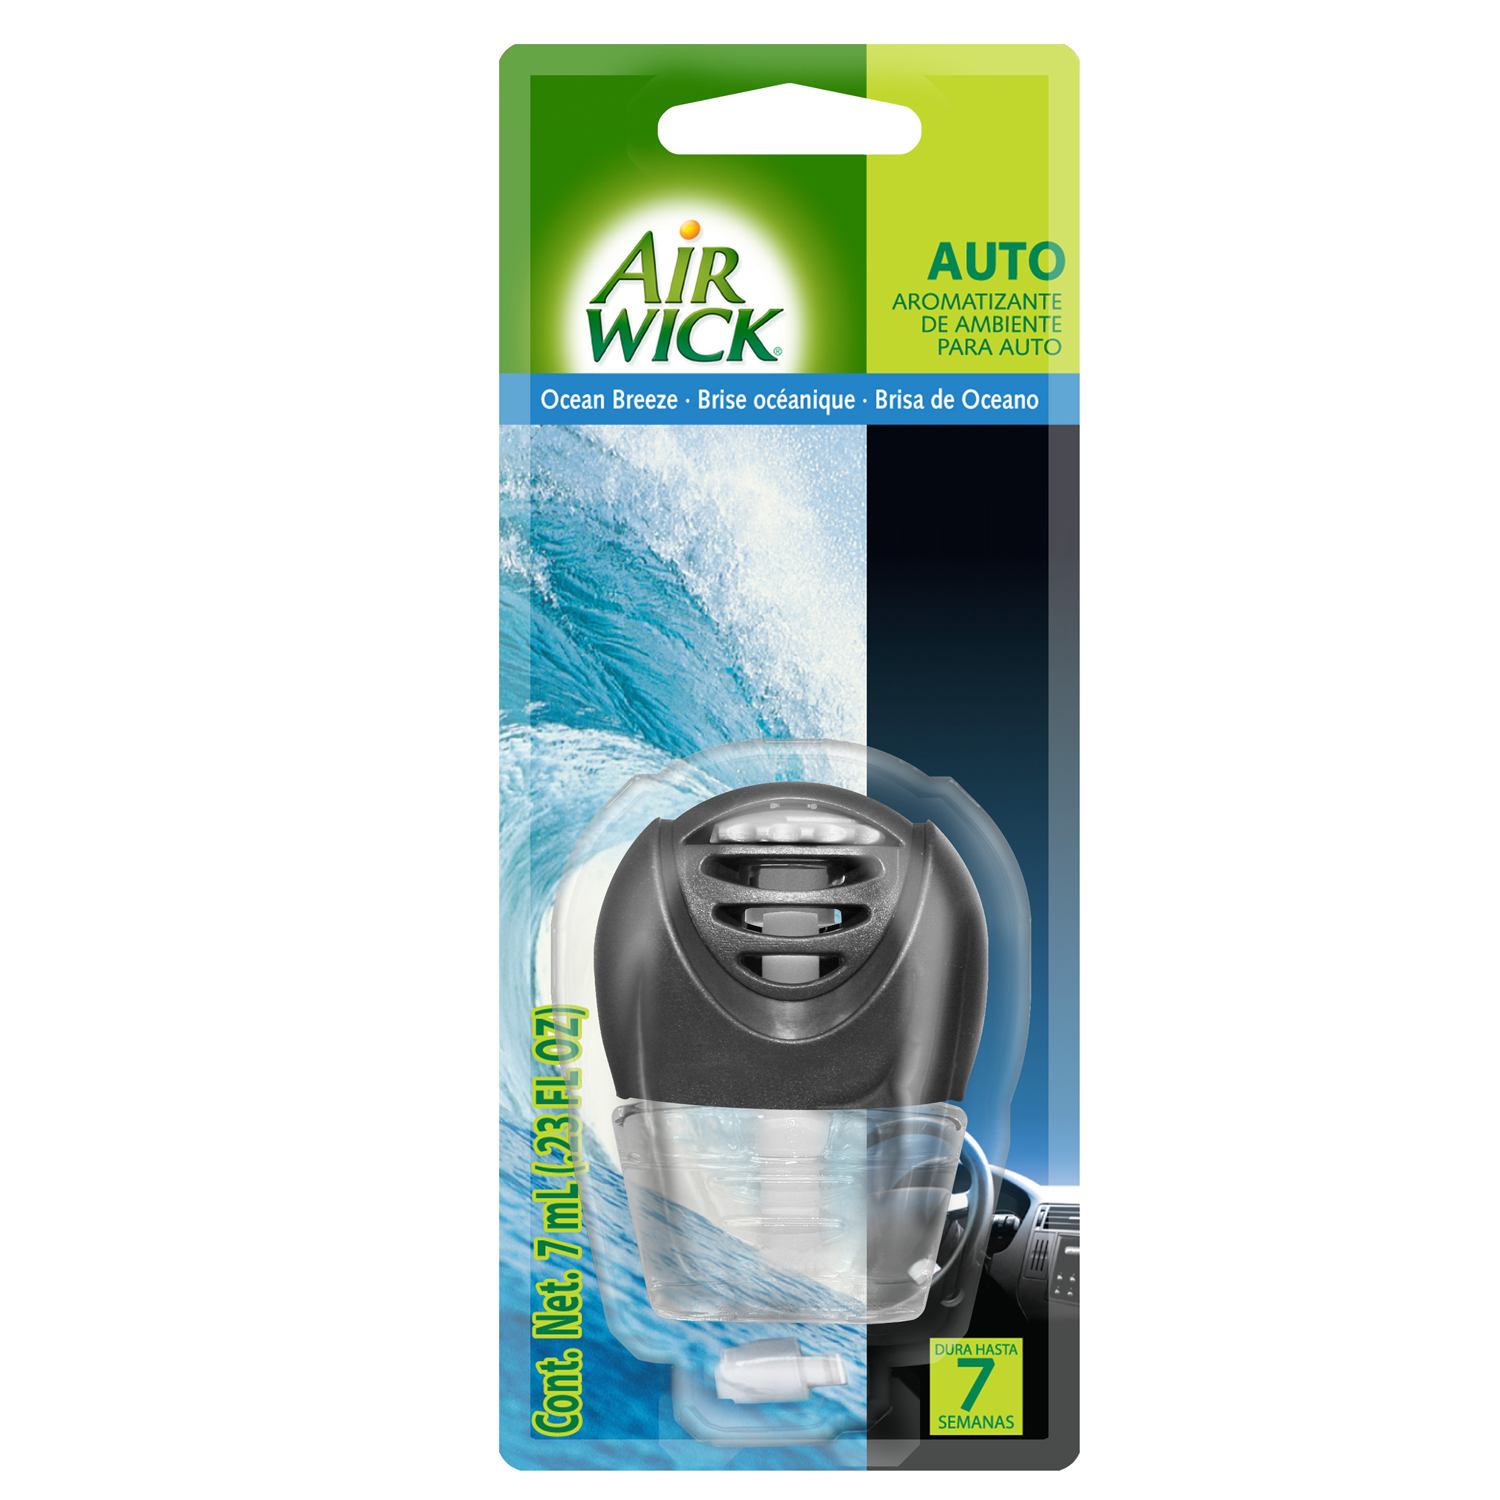 Air Wick® Ocean Breeze Aparato + Repuesto para auto 7mL